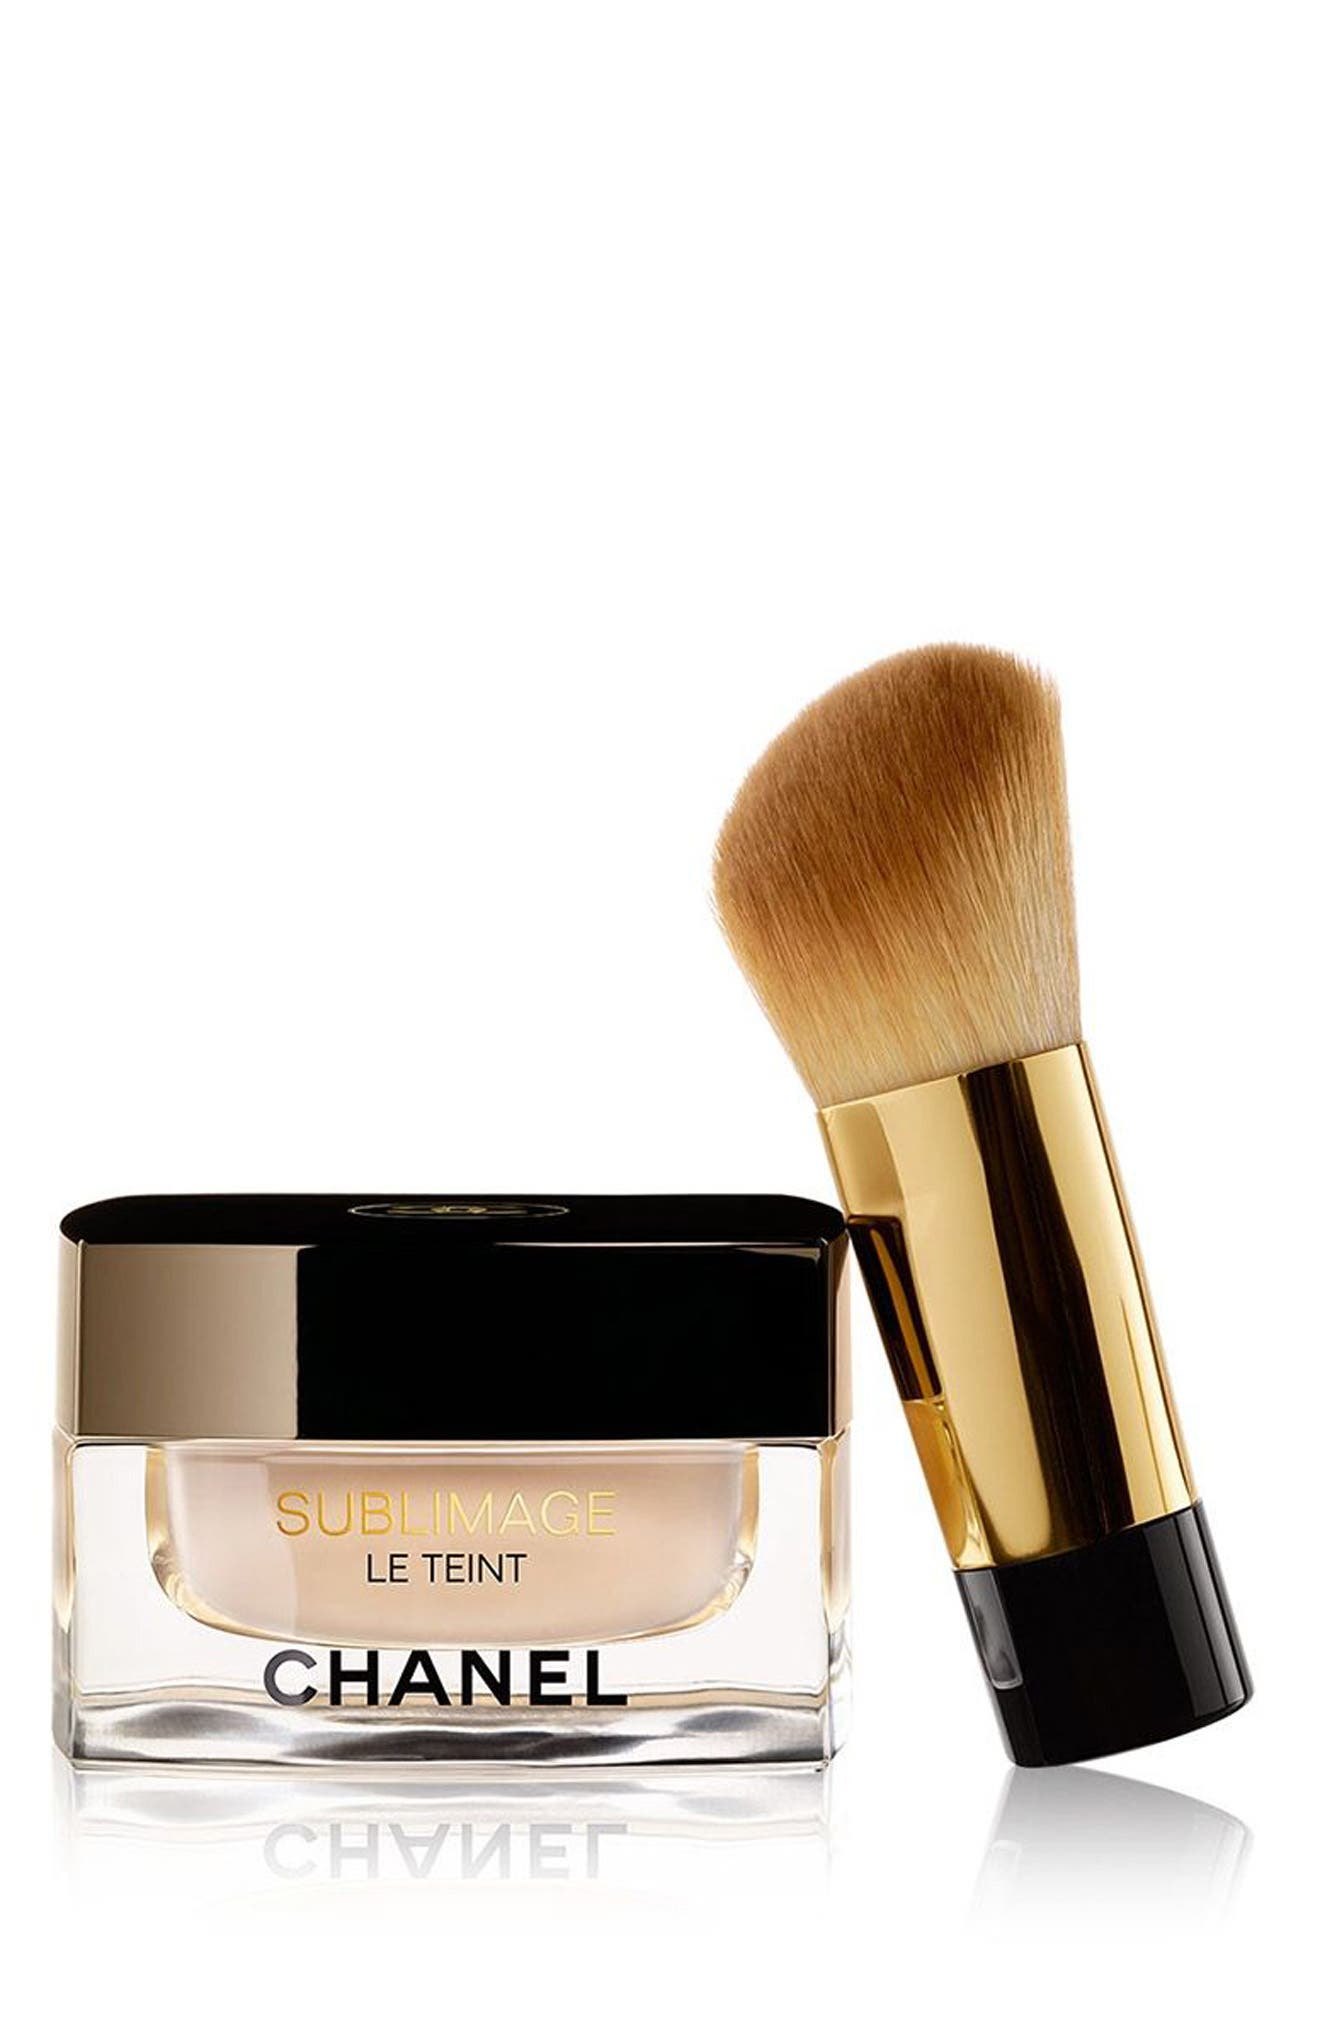 CHANEL SUBLIMAGE LE TEINT<br />Foundation, Main, color, 250